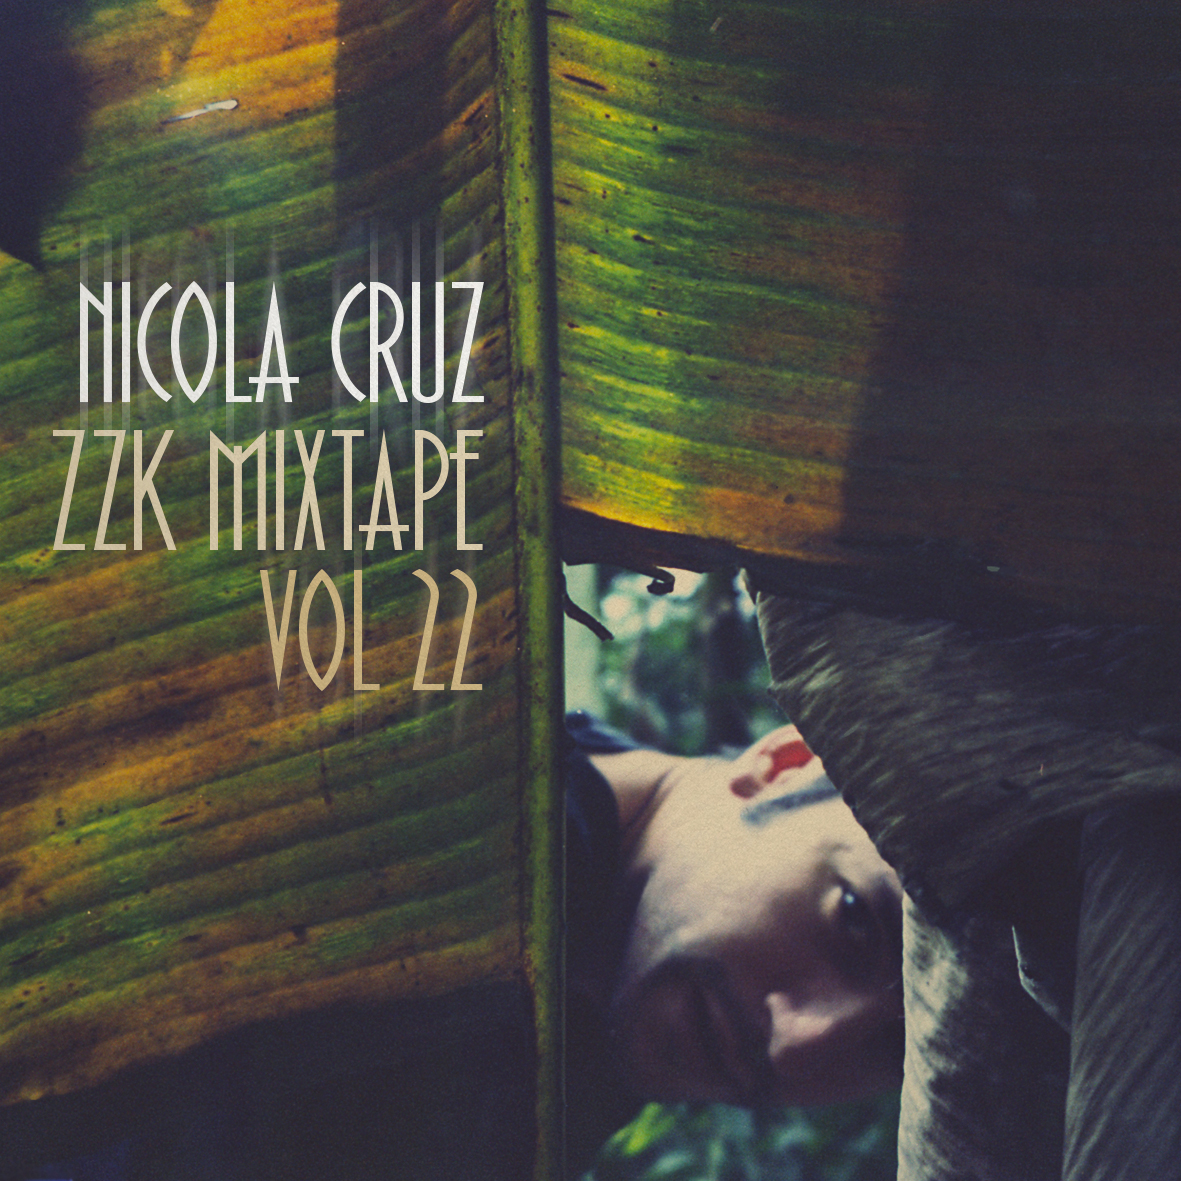 Nicola Cruz Masterfully Weaves Industrial and Tropical Bliss on 'ZZK Mixtape Vol. 22'